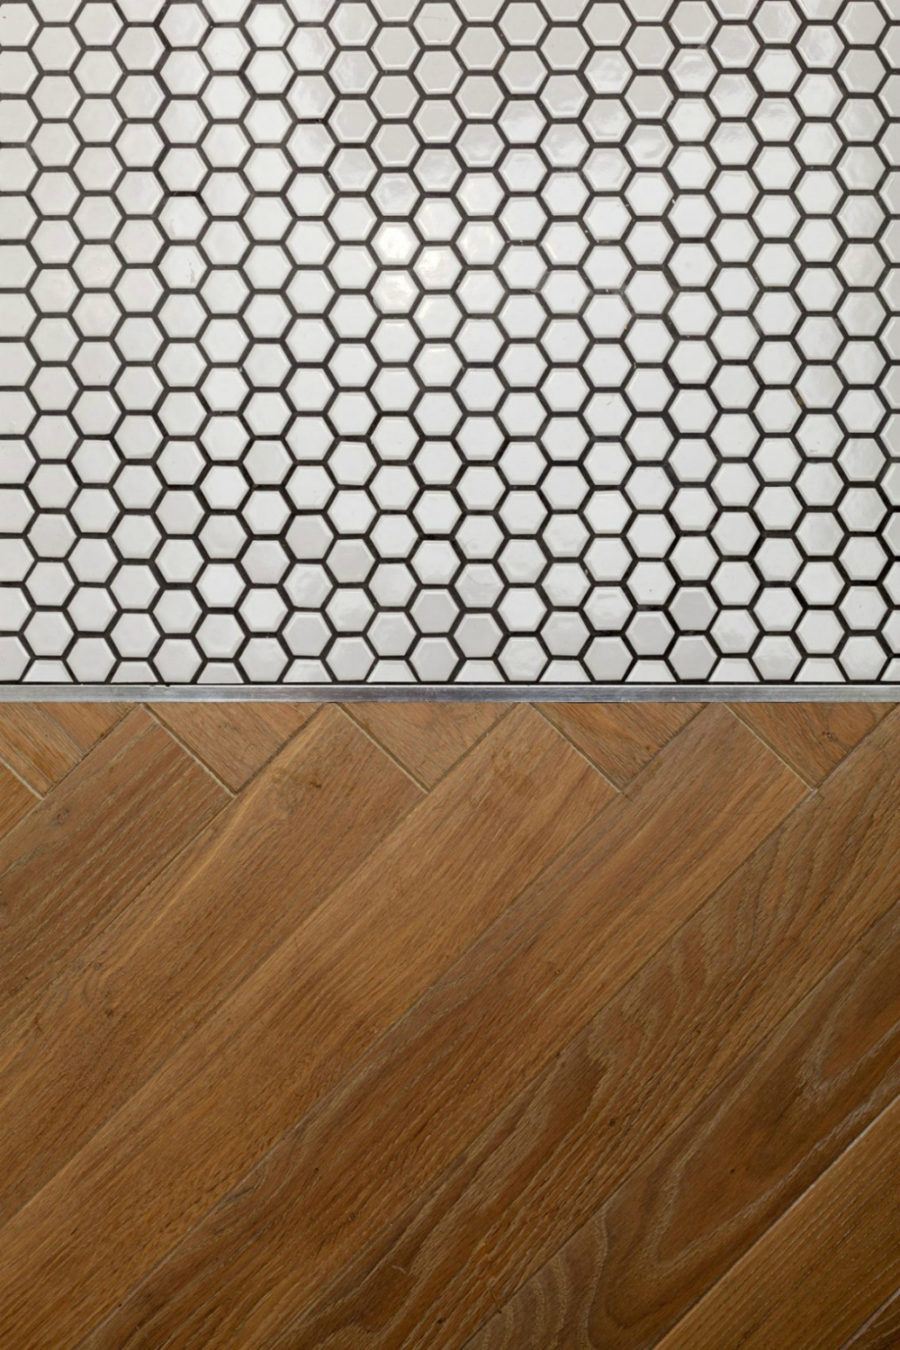 Wooden floor breaks into tiny honeycomb tiles